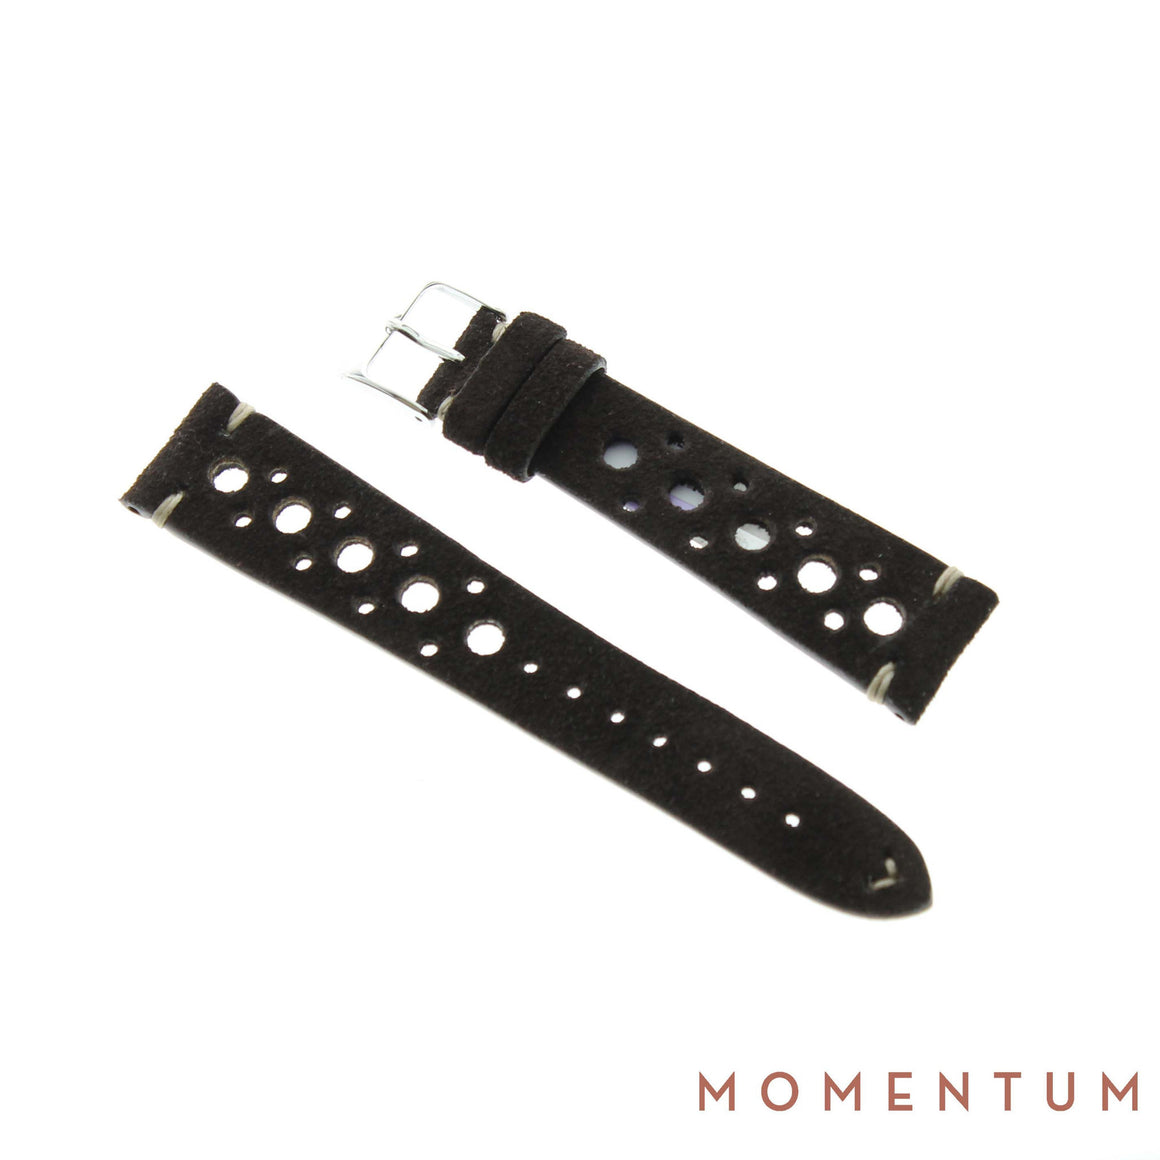 Vintage Strap - Dark Brown Suede with holes - Calf Leather - Momentum Dubai